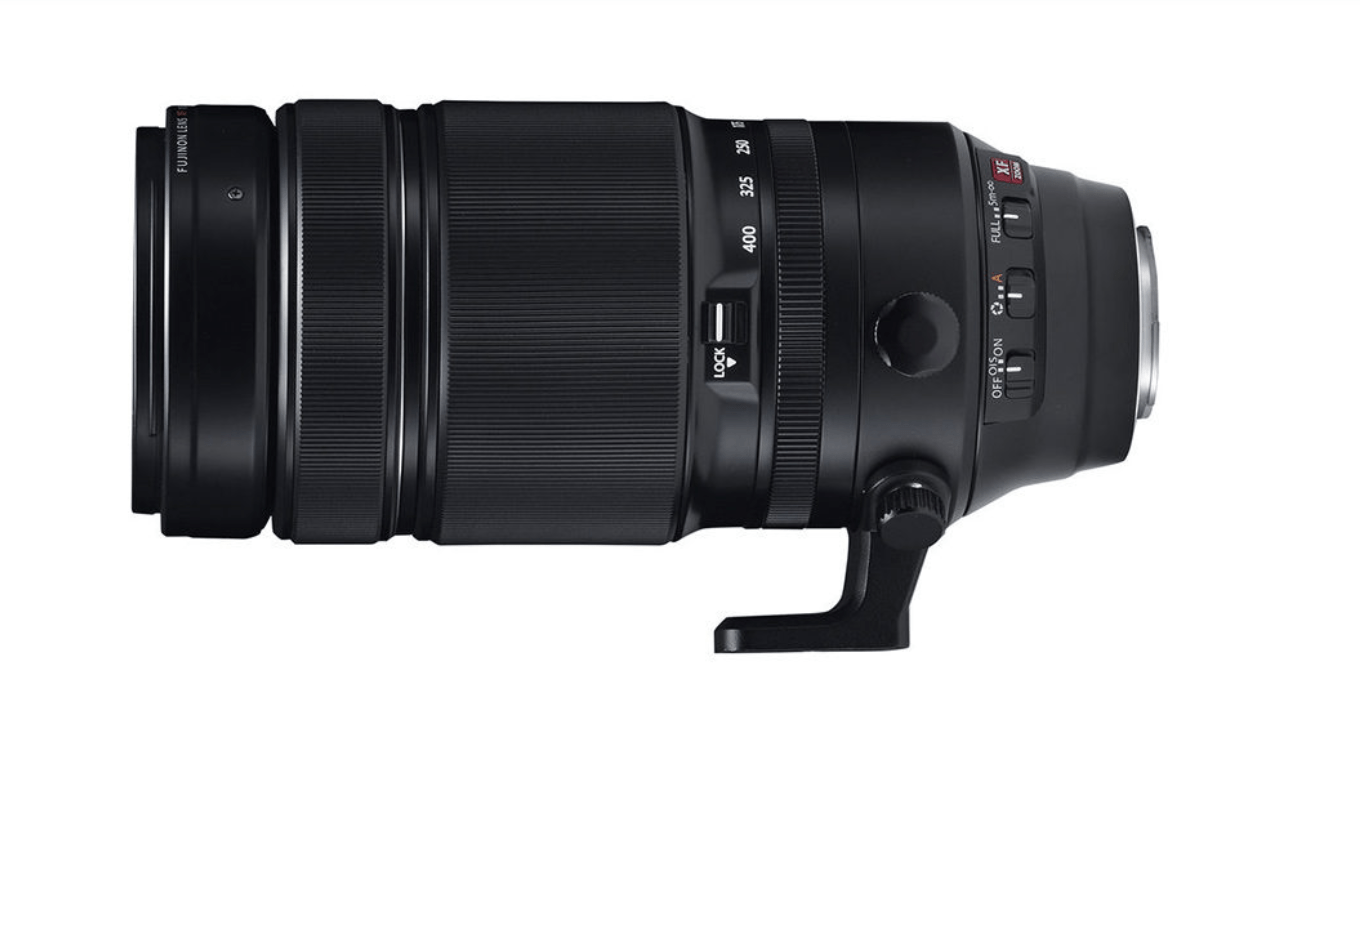 Review: Fujifilm XF100-400mm superzoom